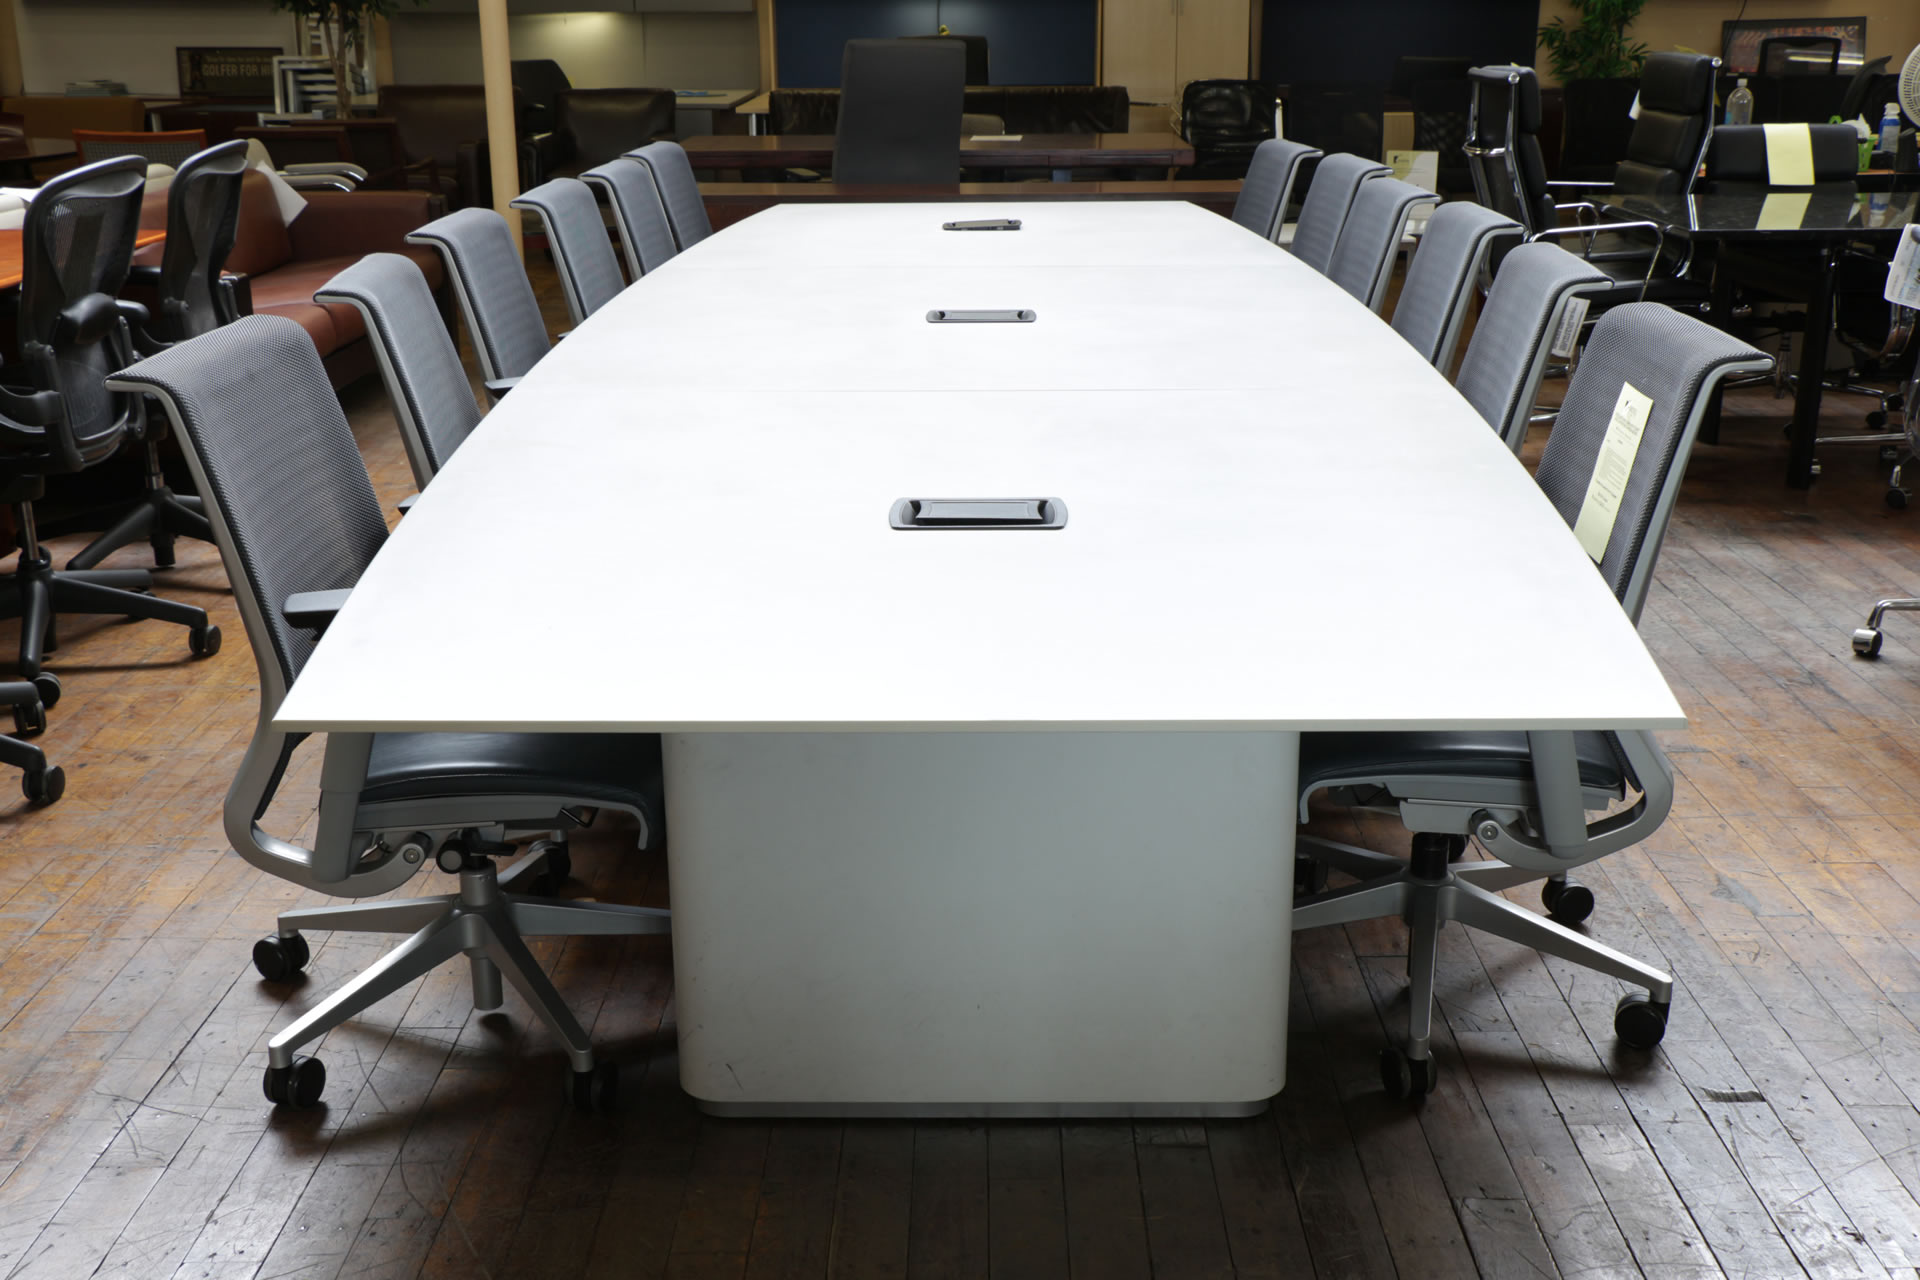 peartreeofficefurniture_peartreeofficefurniture_peartreeofficefurniture_bernhardt-odeon-conference-tables-9-11-153.jpg